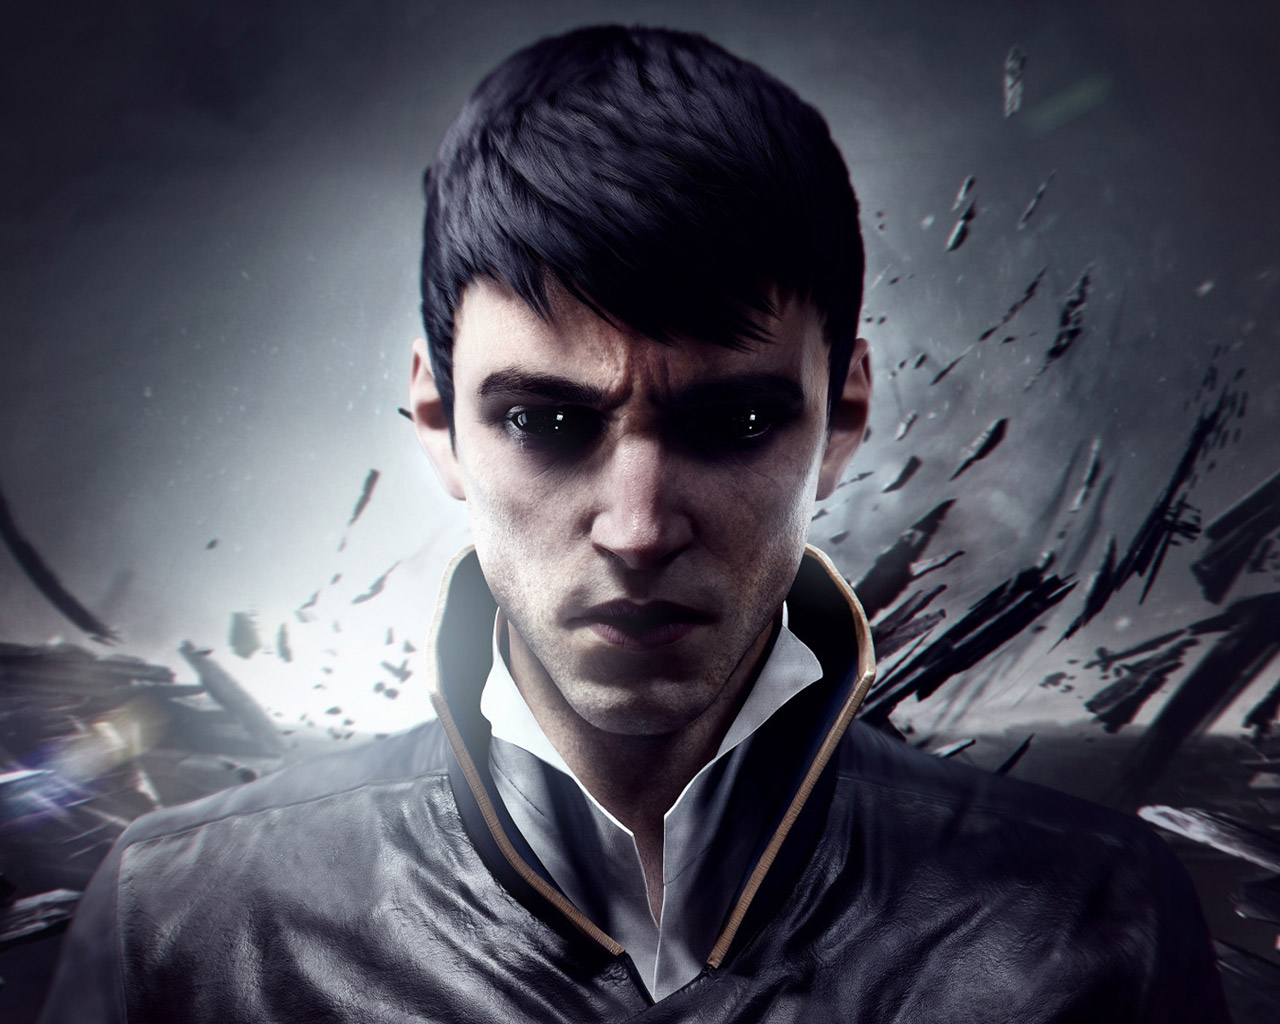 Dishonored 2 Wallpaper in 1280x1024